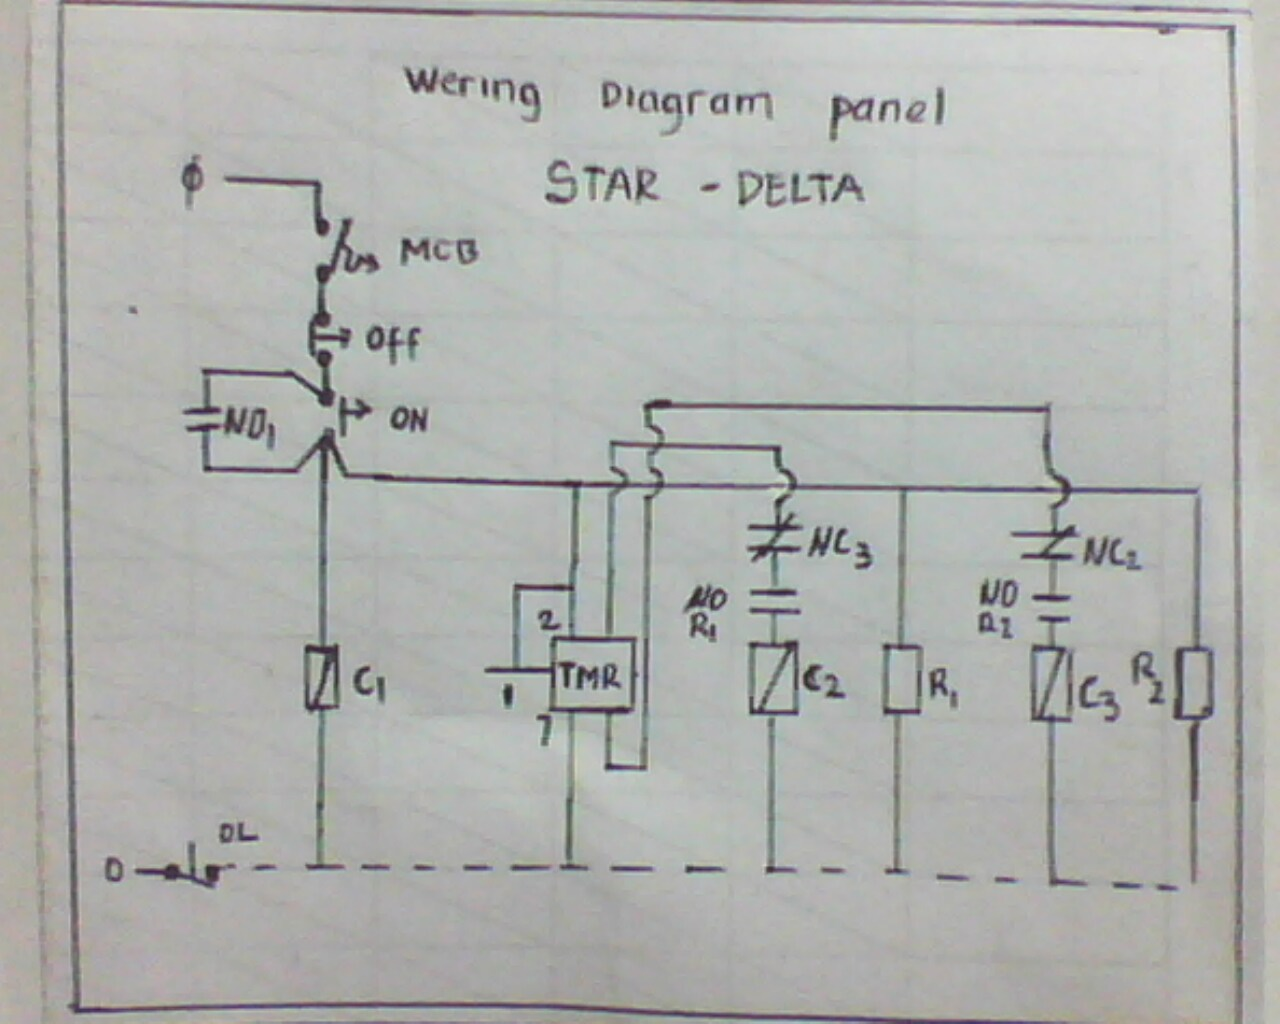 Star - delta is the circuit to run the electric motor, which at the time of  star using a hub. star (star) and moments later turned into a delta  (triangle).